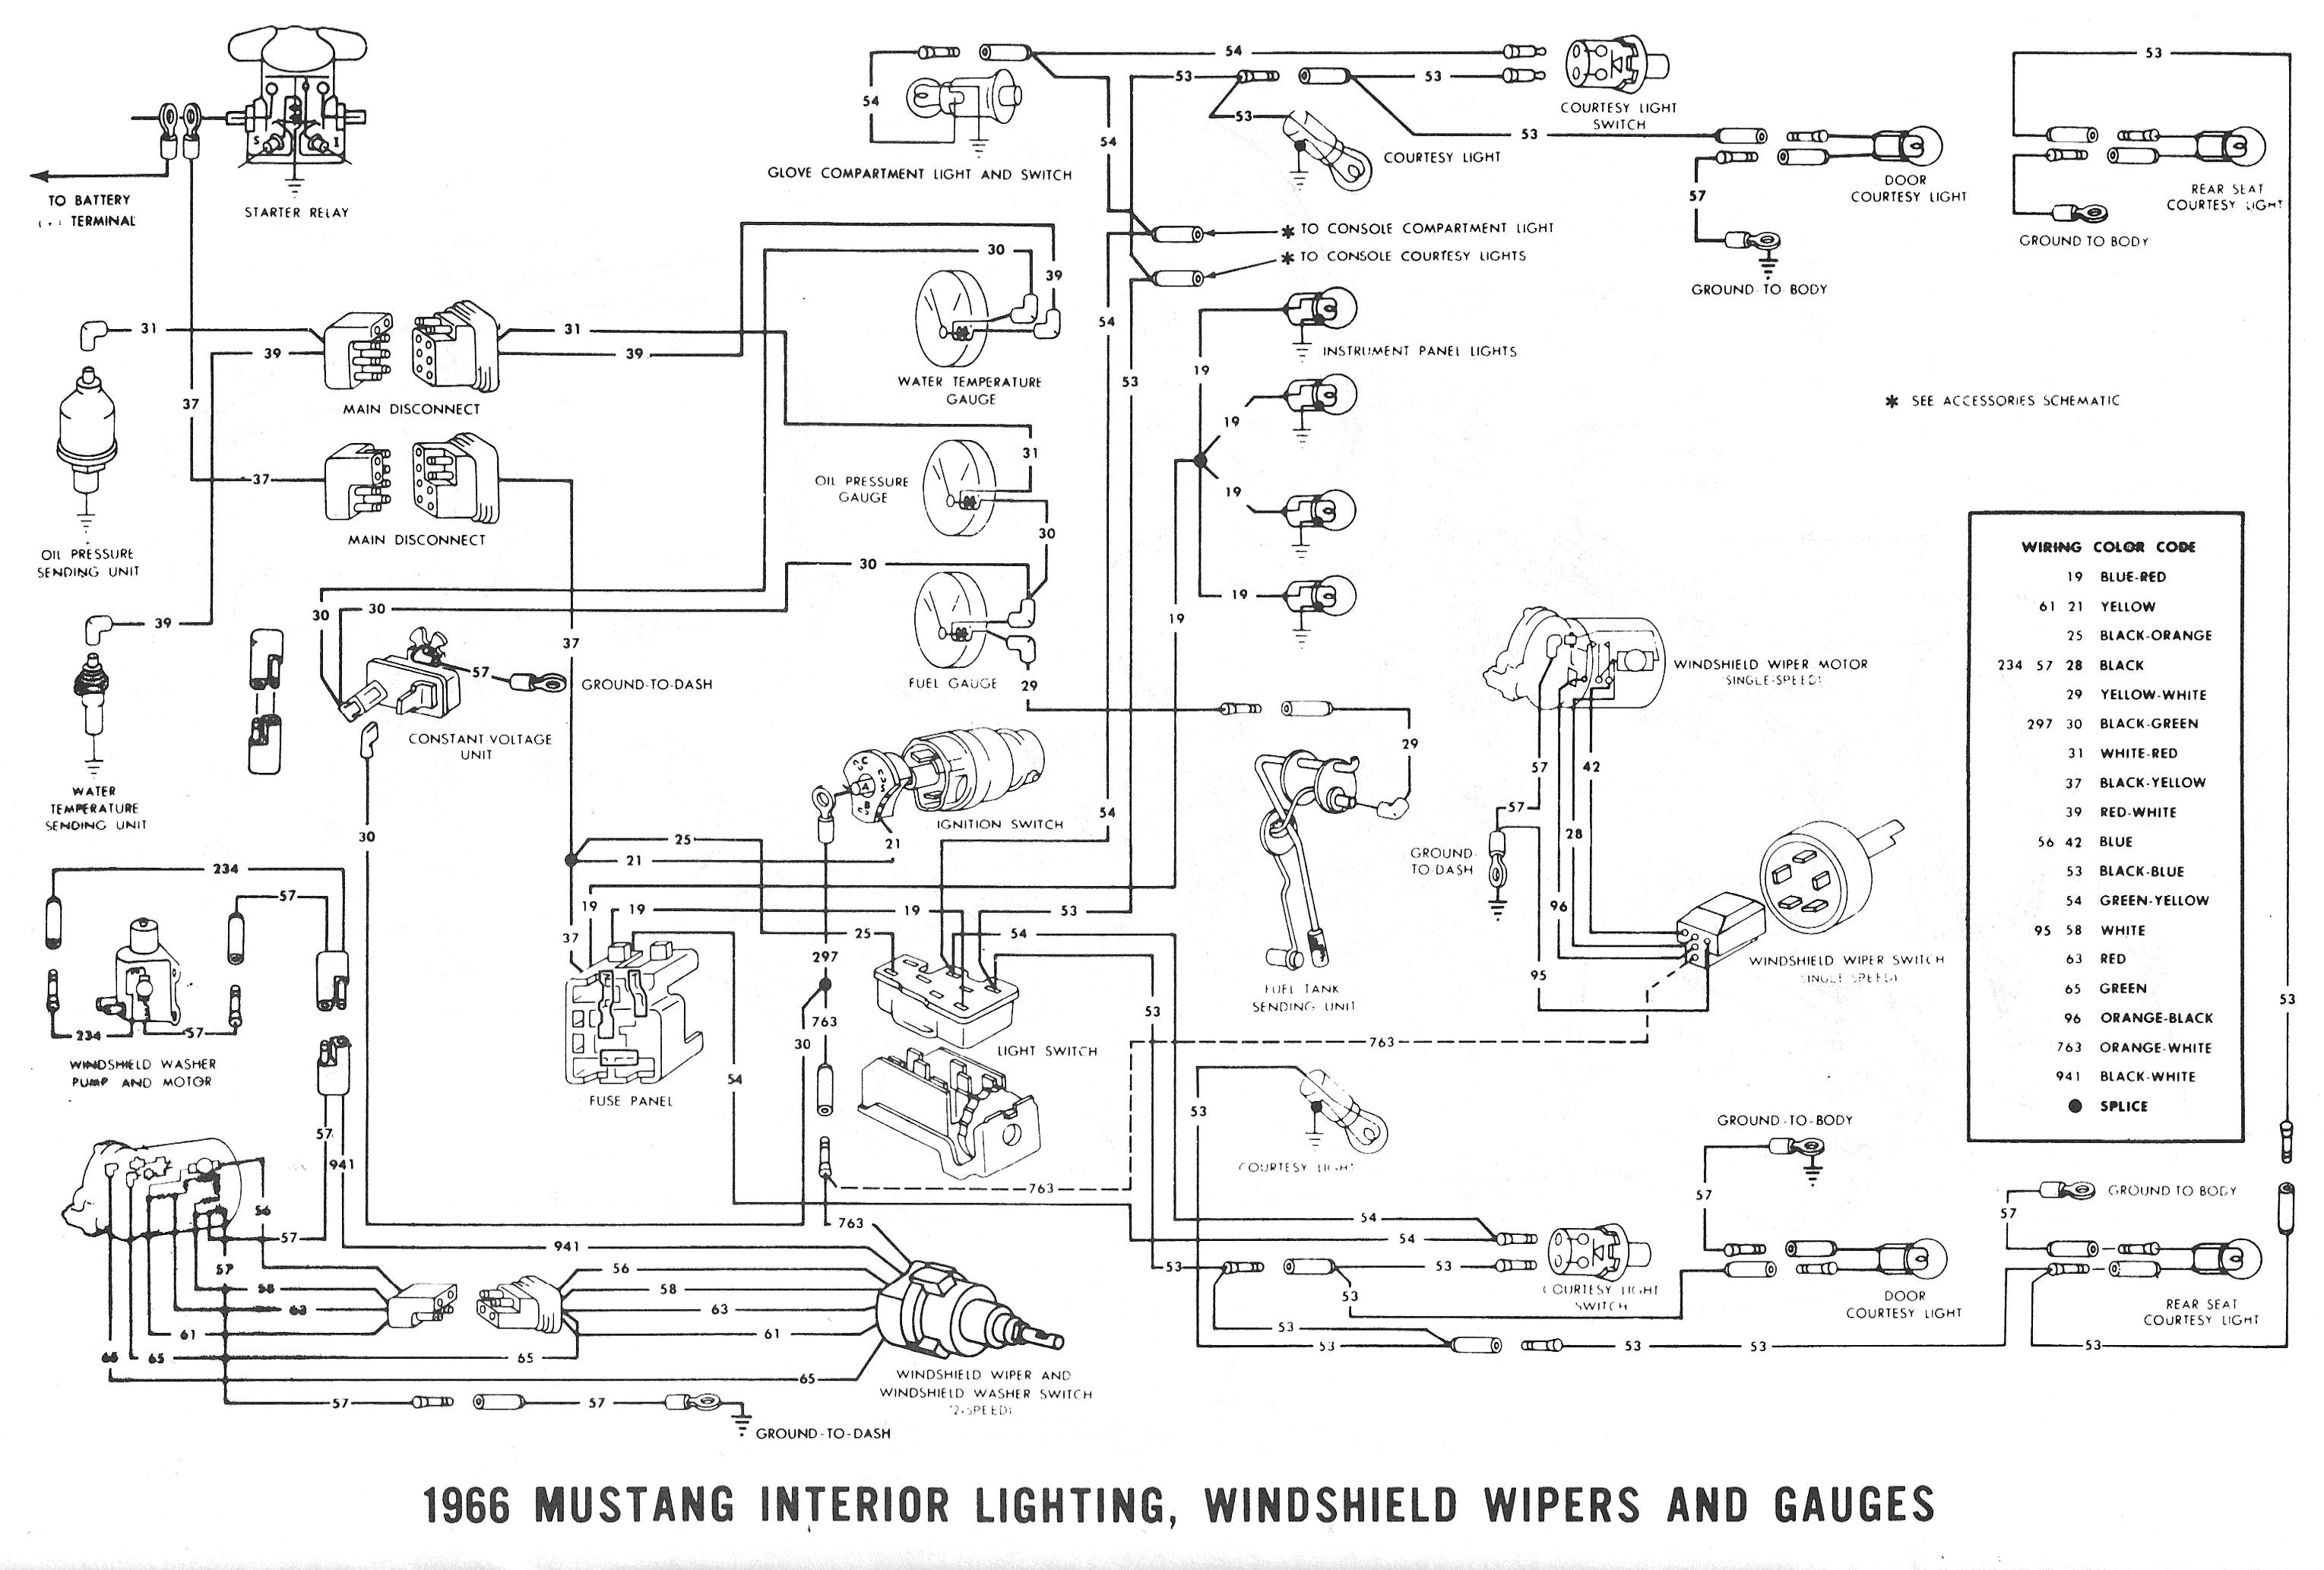 96 04 mustang pcm wiring diagram